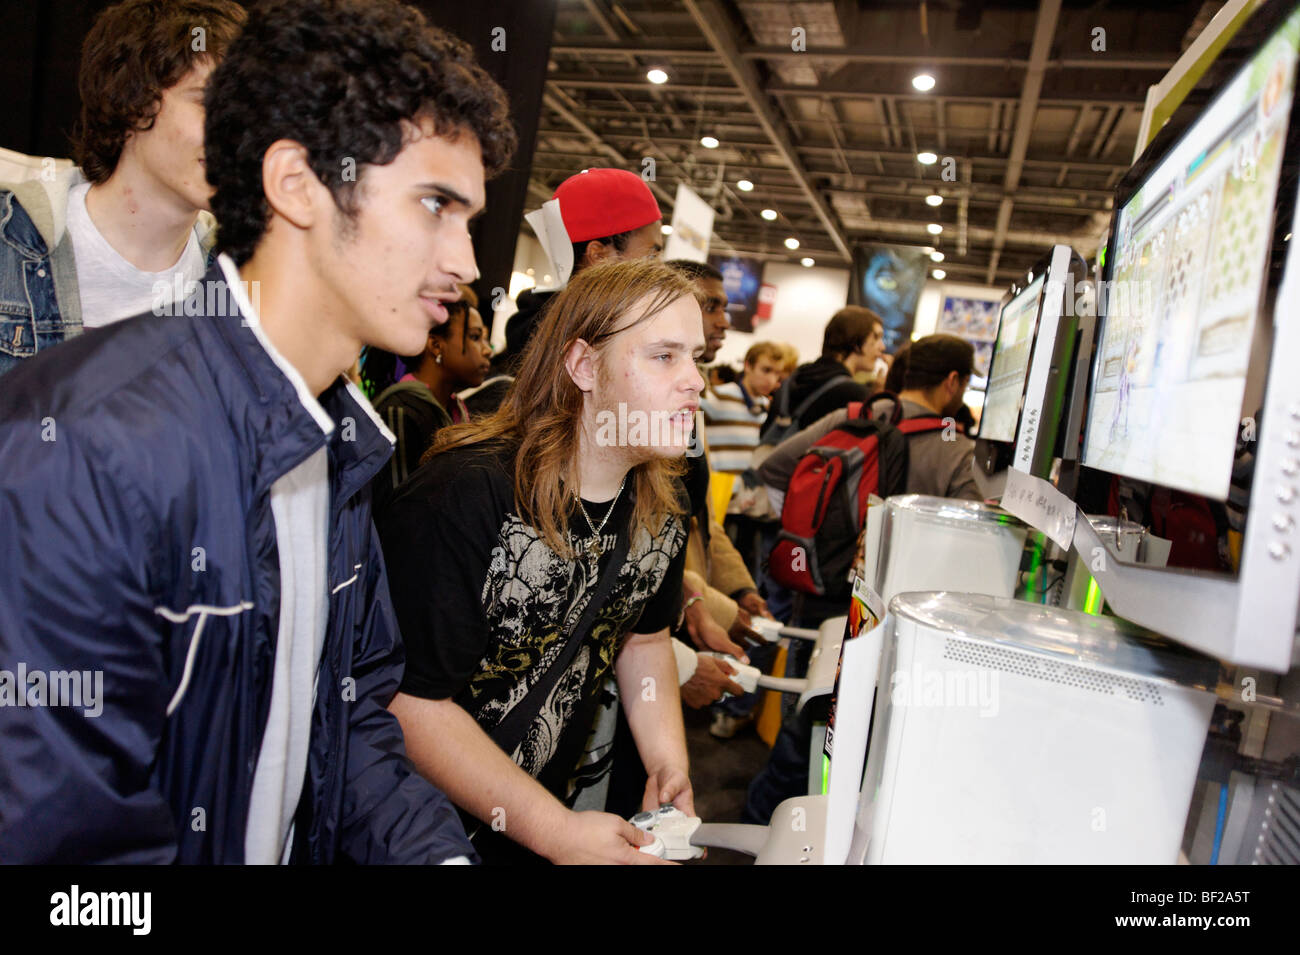 Fans playing video games at the London MCM expo. Britain 2009. - Stock Image